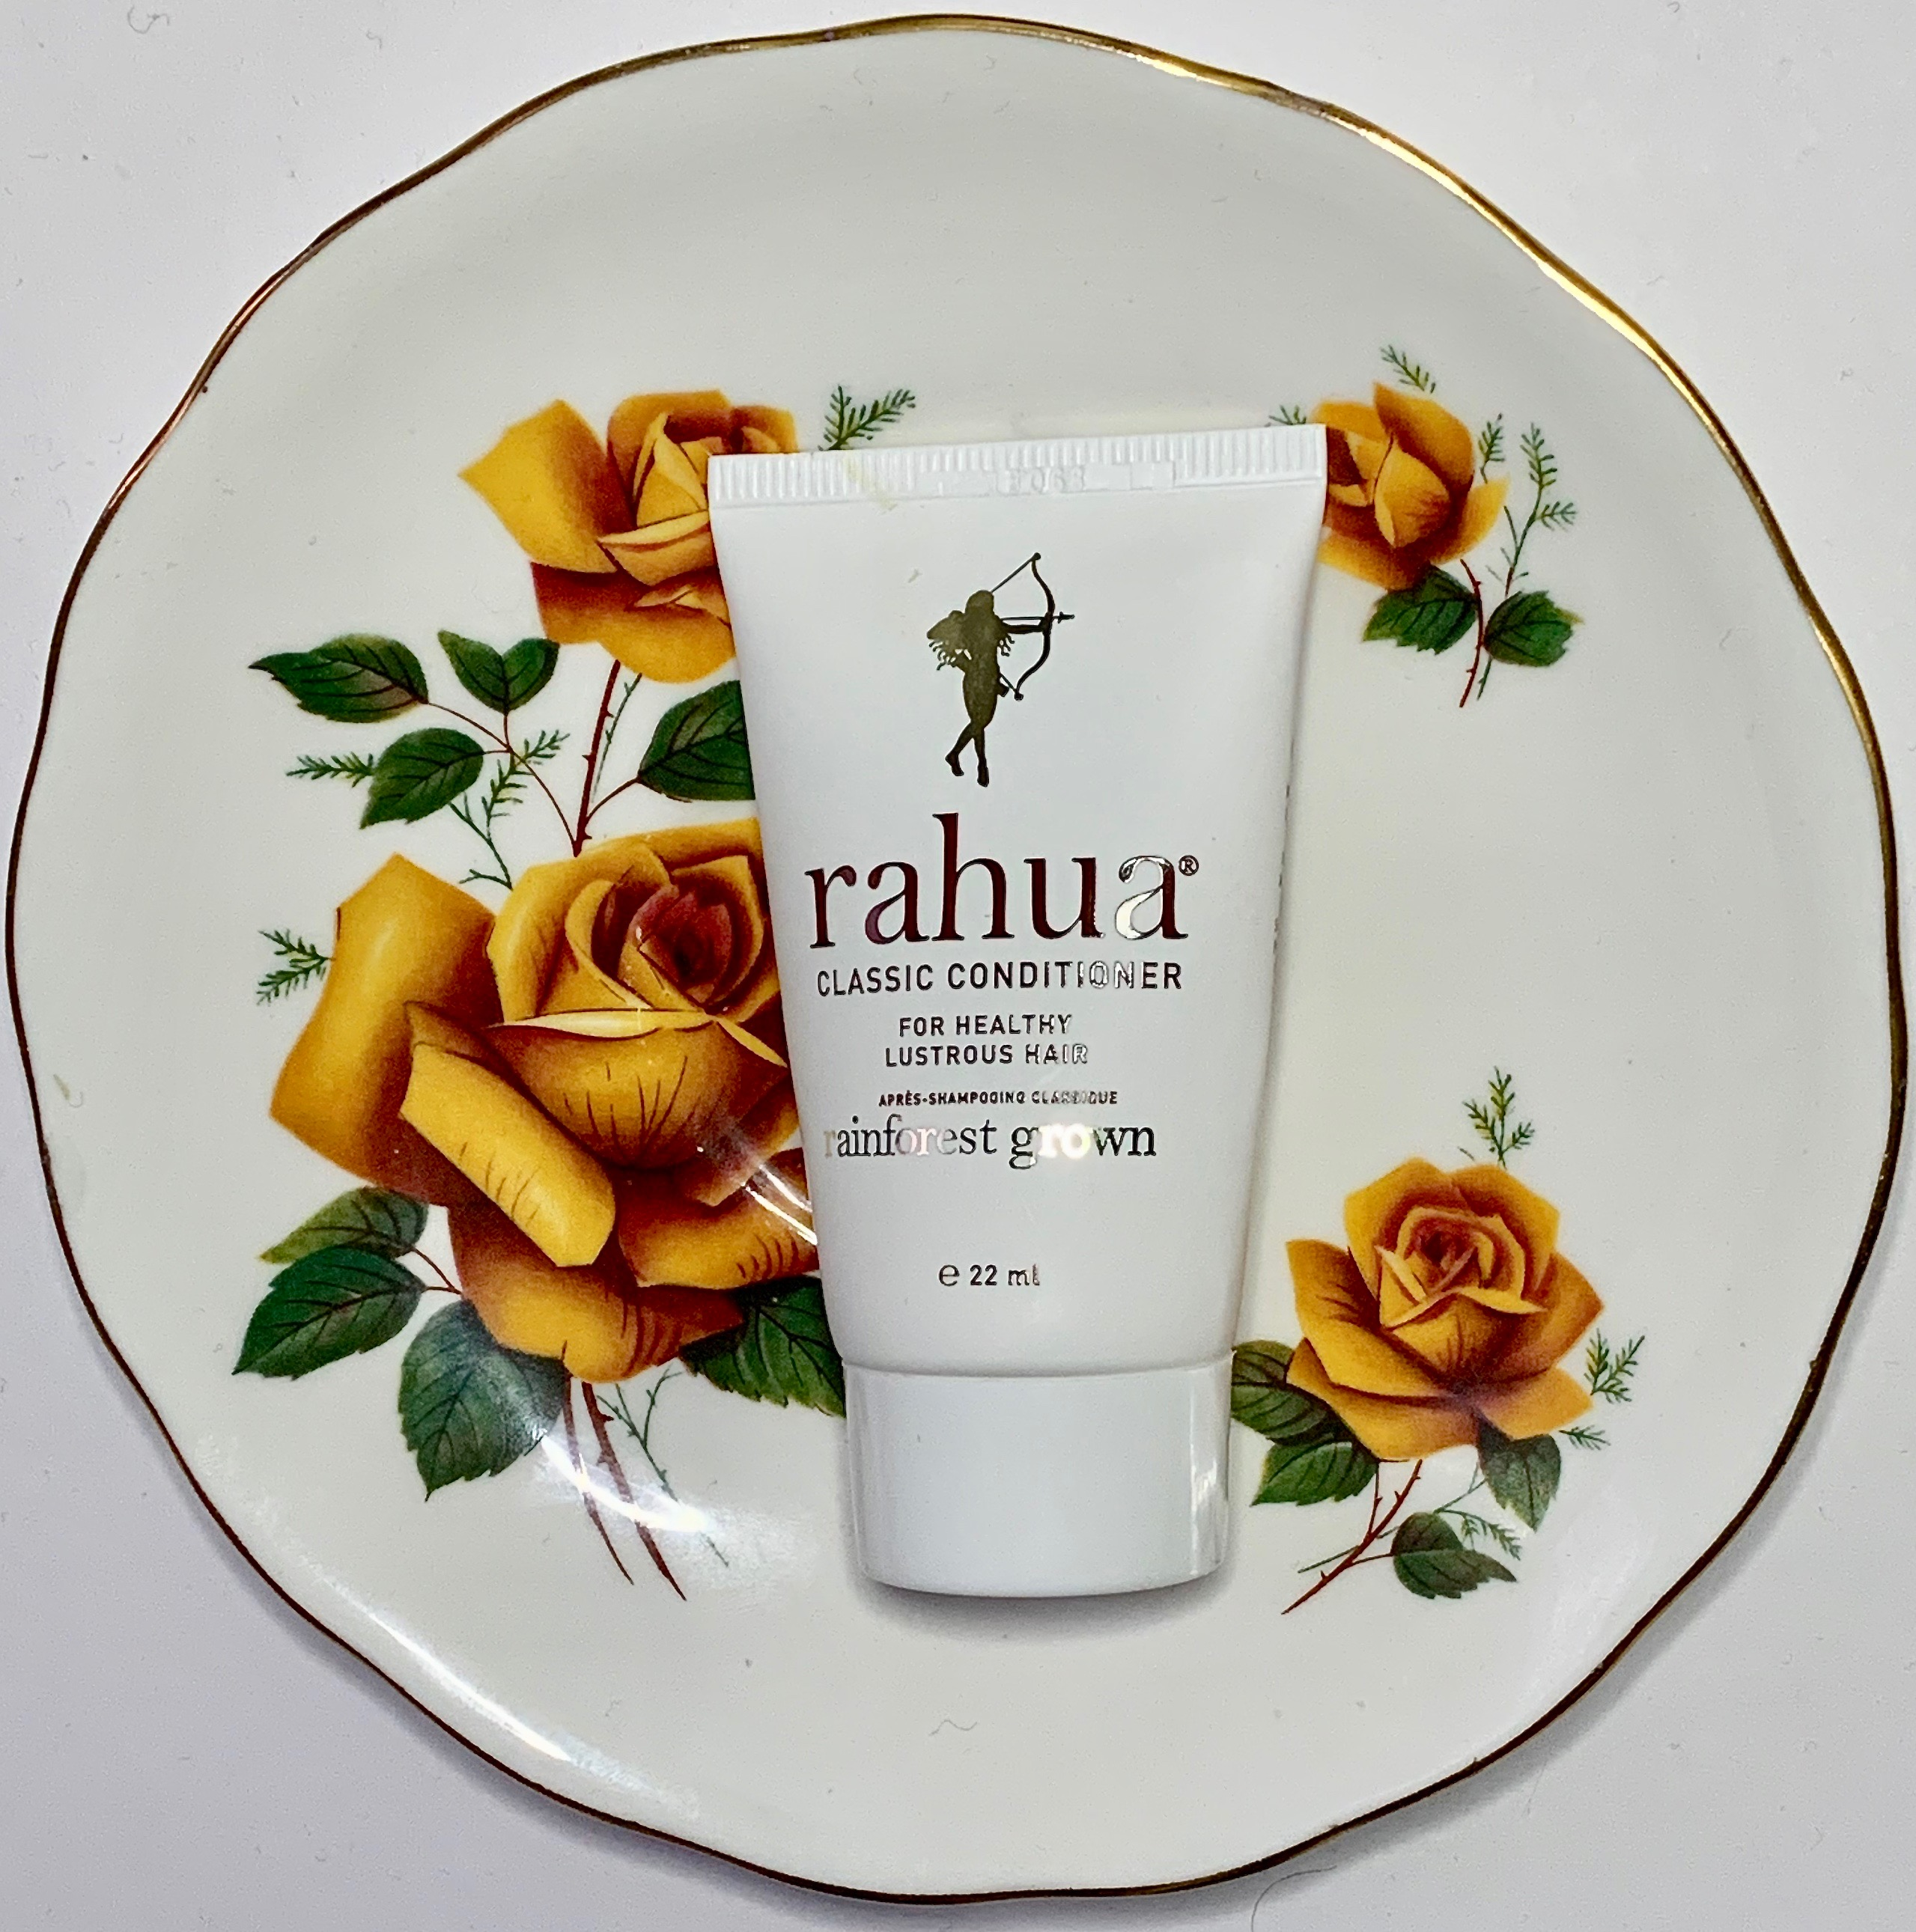 Rahua Classic Shampoo & Conditioner